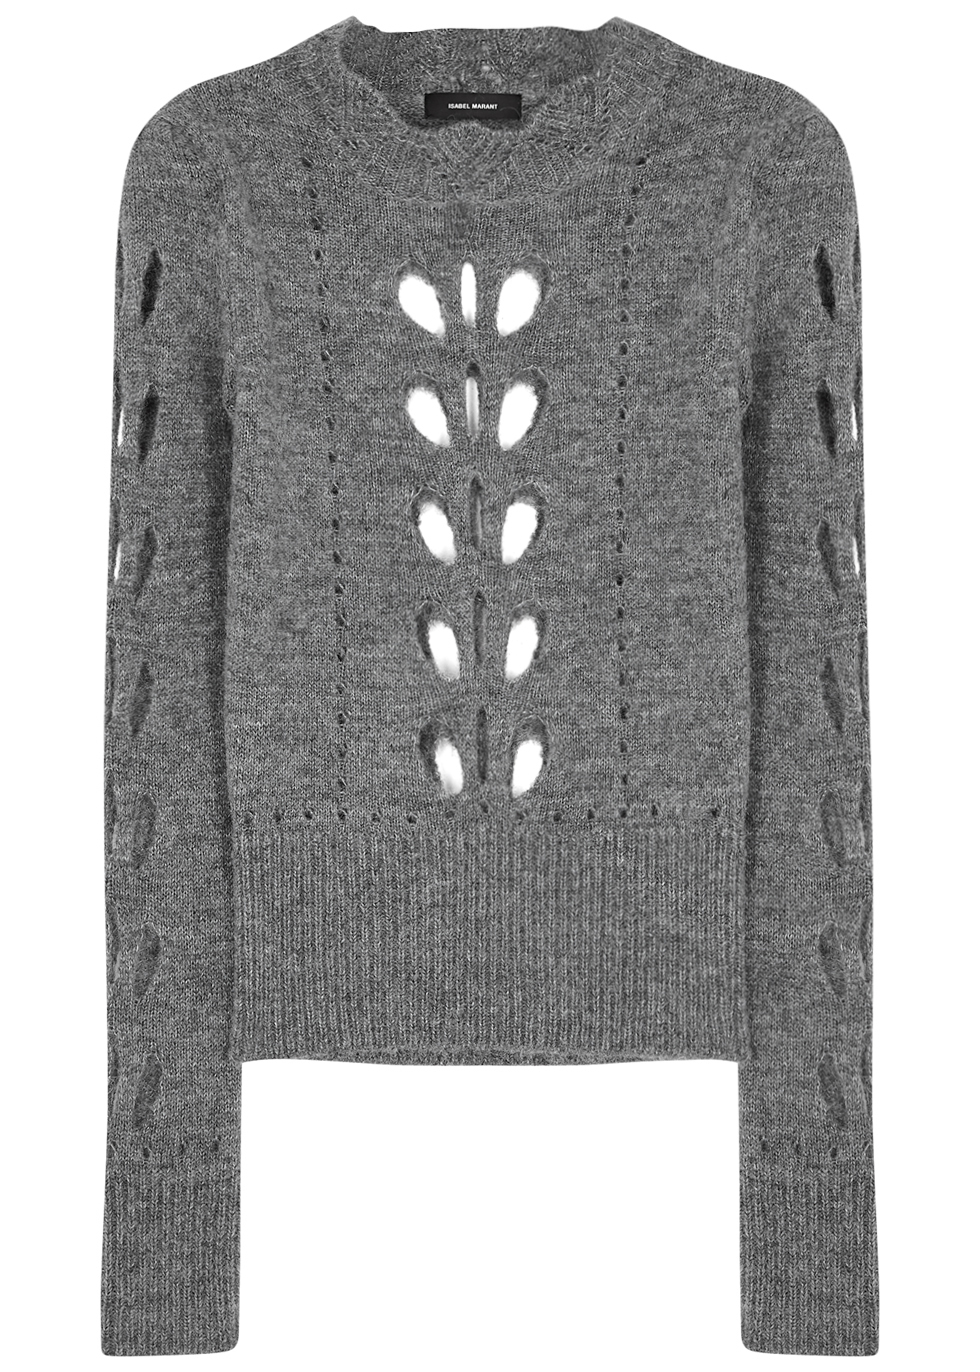 Ilia Grey Cut Out Jumper - pattern: plain; style: standard; predominant colour: charcoal; occasions: casual; length: standard; fibres: acrylic - mix; fit: slim fit; neckline: crew; sleeve length: long sleeve; sleeve style: standard; texture group: knits/crochet; pattern type: knitted - other; wardrobe: basic; season: a/w 2016